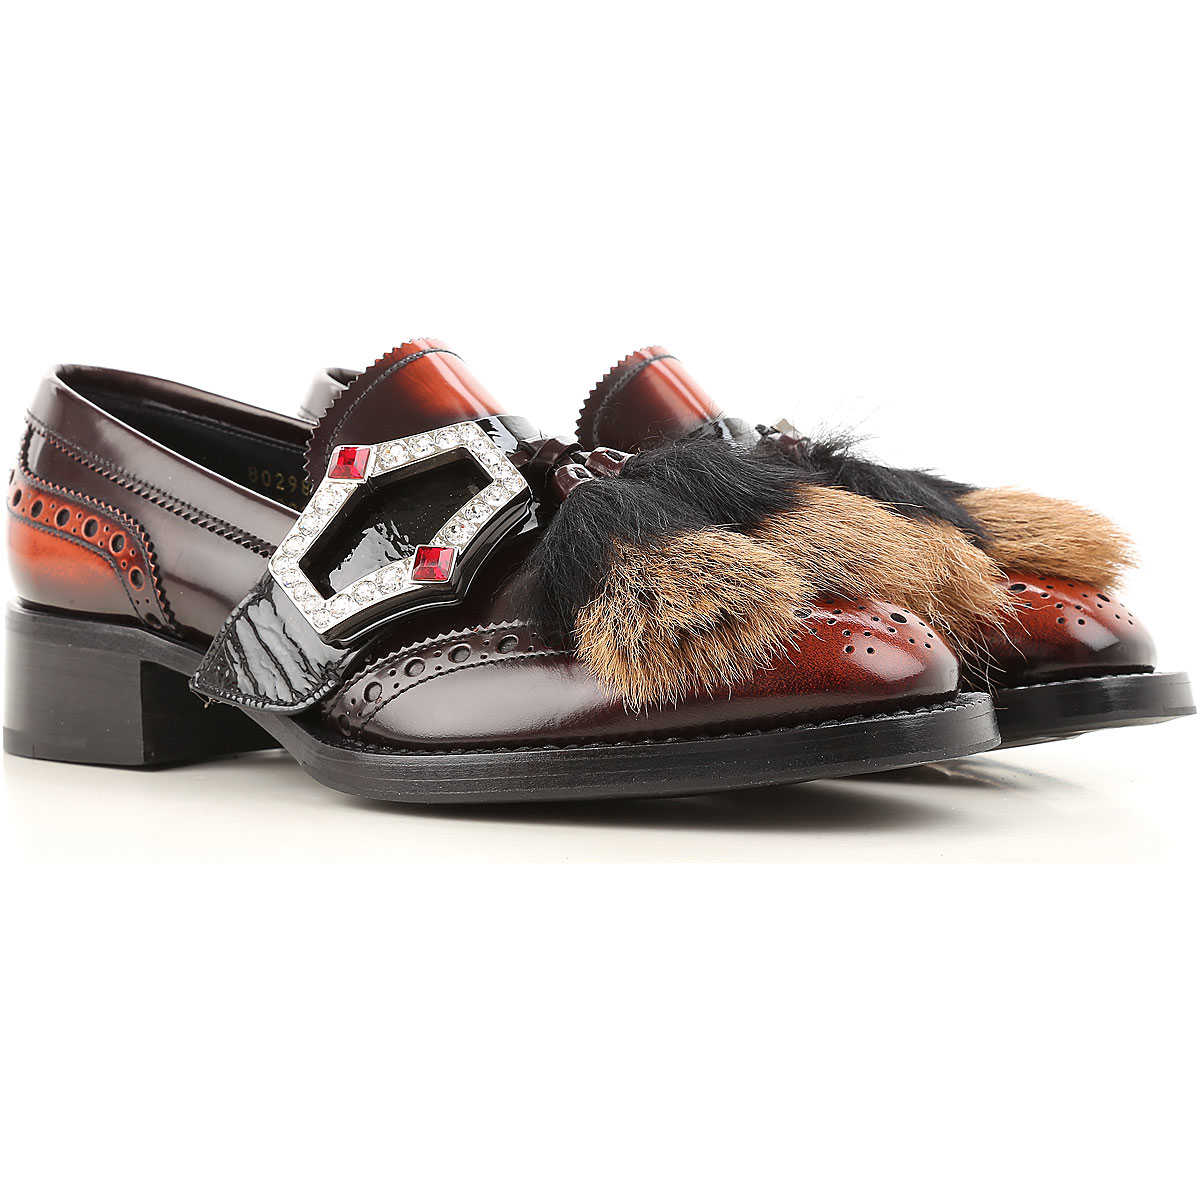 Prada Loafers for Women On Sale in Outlet tabacco SE - GOOFASH